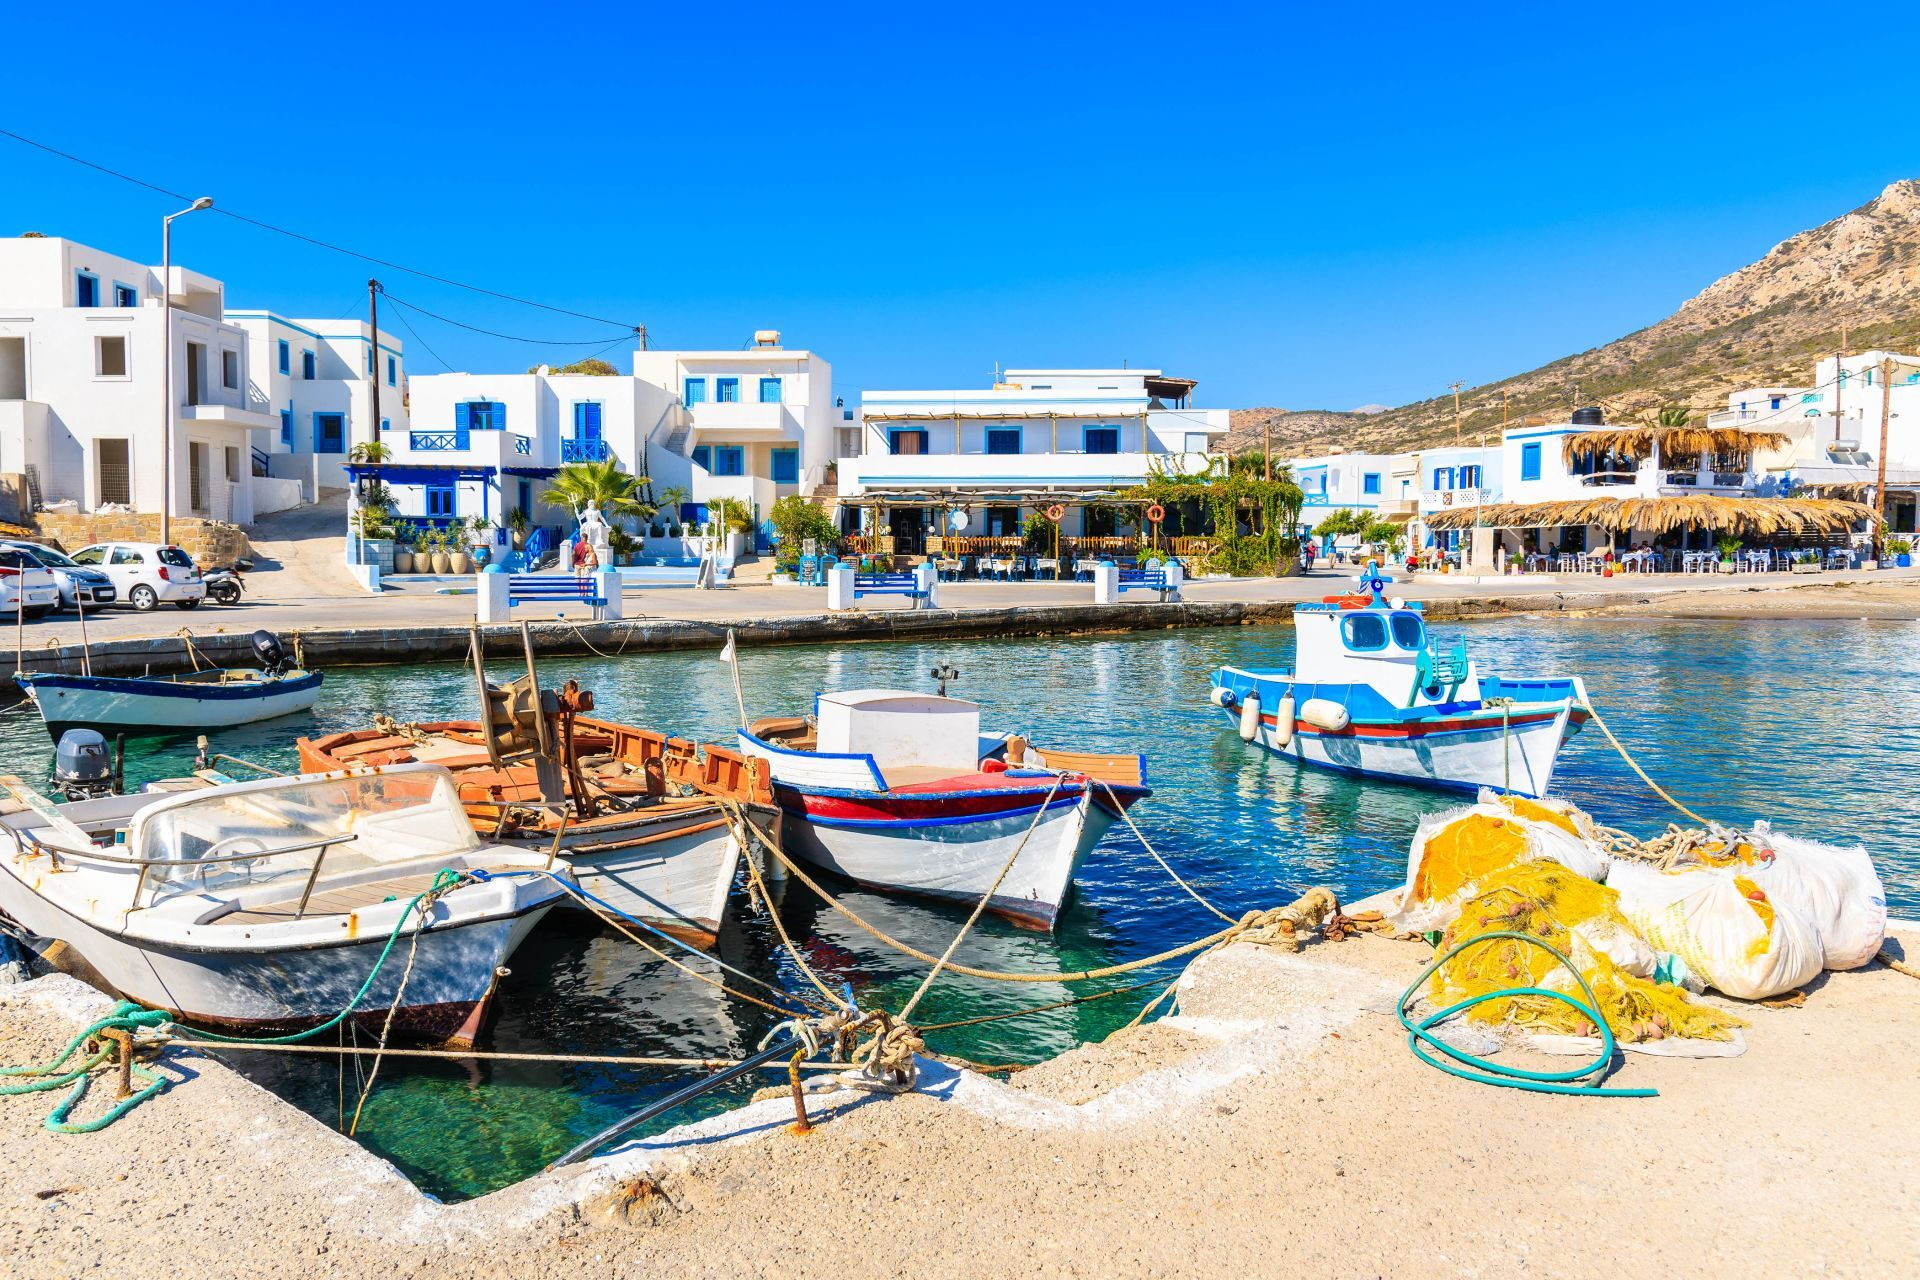 Accommodation and hotels in Karpathos